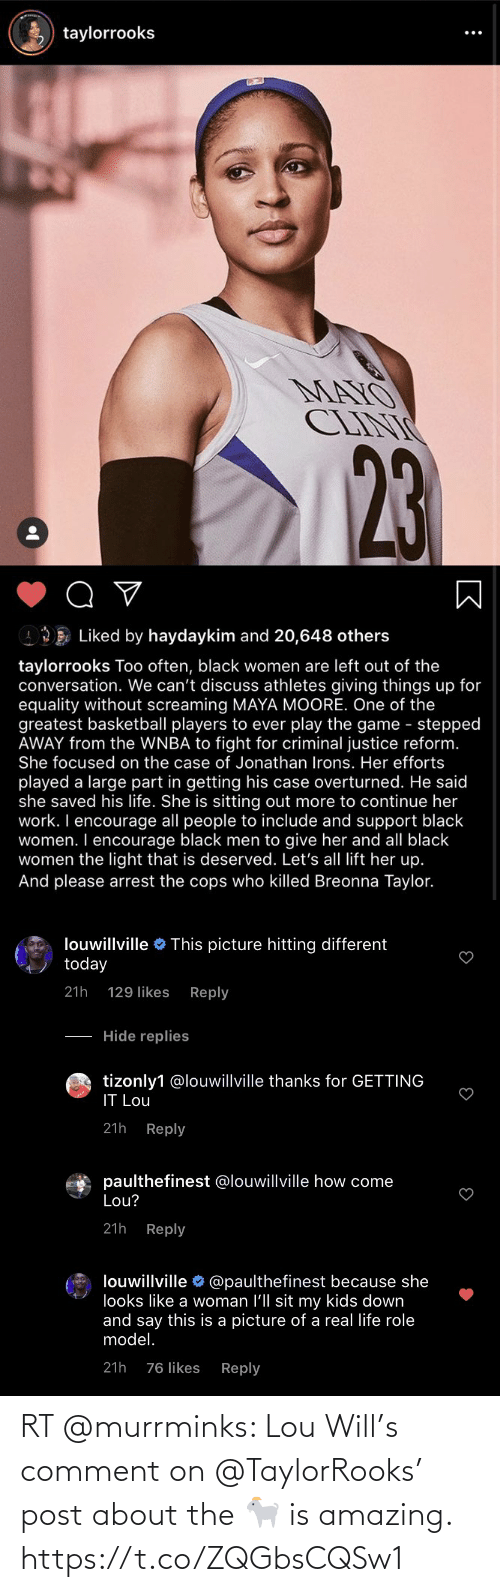 comment: RT @murrminks: Lou Will's comment on @TaylorRooks' post about the 🐐 is amazing. https://t.co/ZQGbsCQSw1